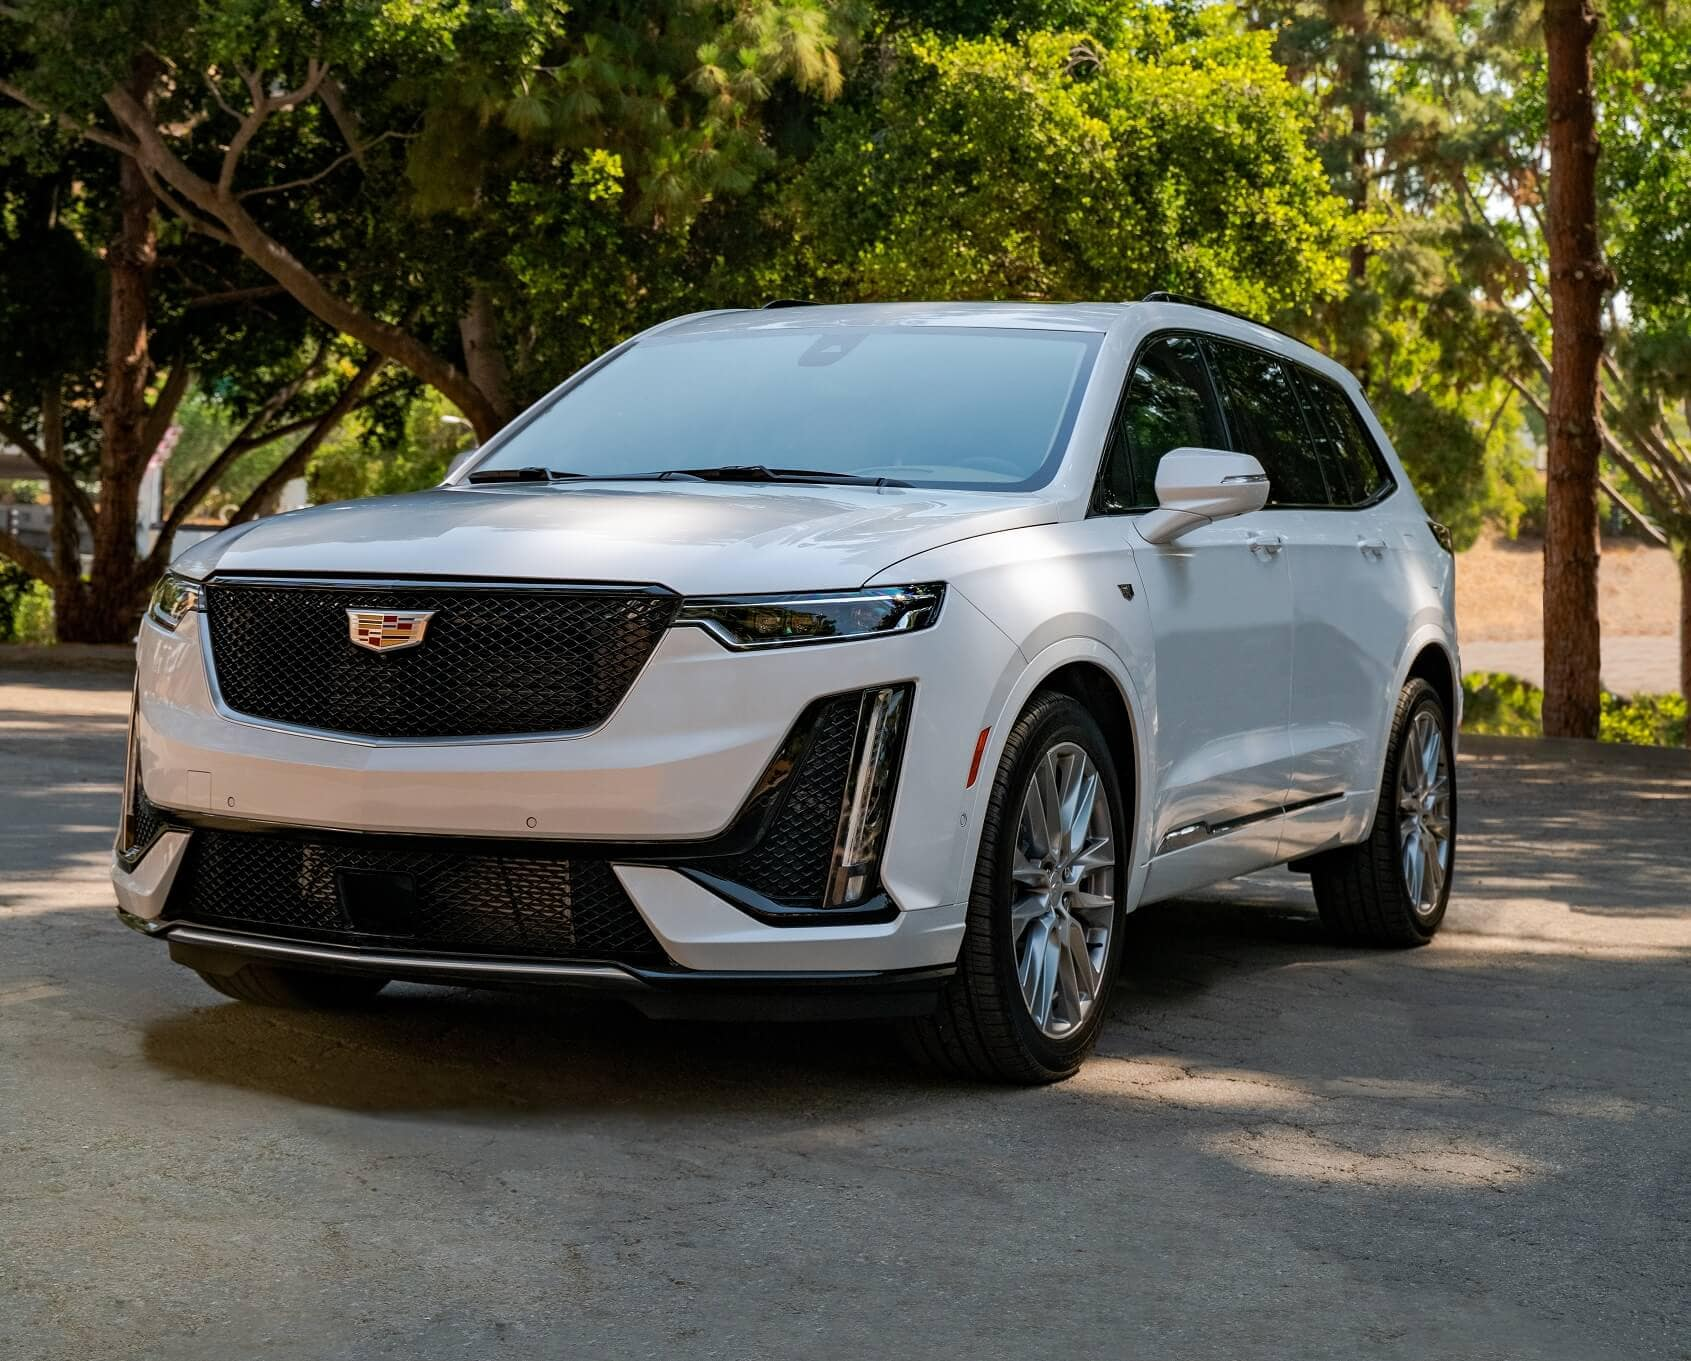 Benefits of Leasing a Cadillac XT6